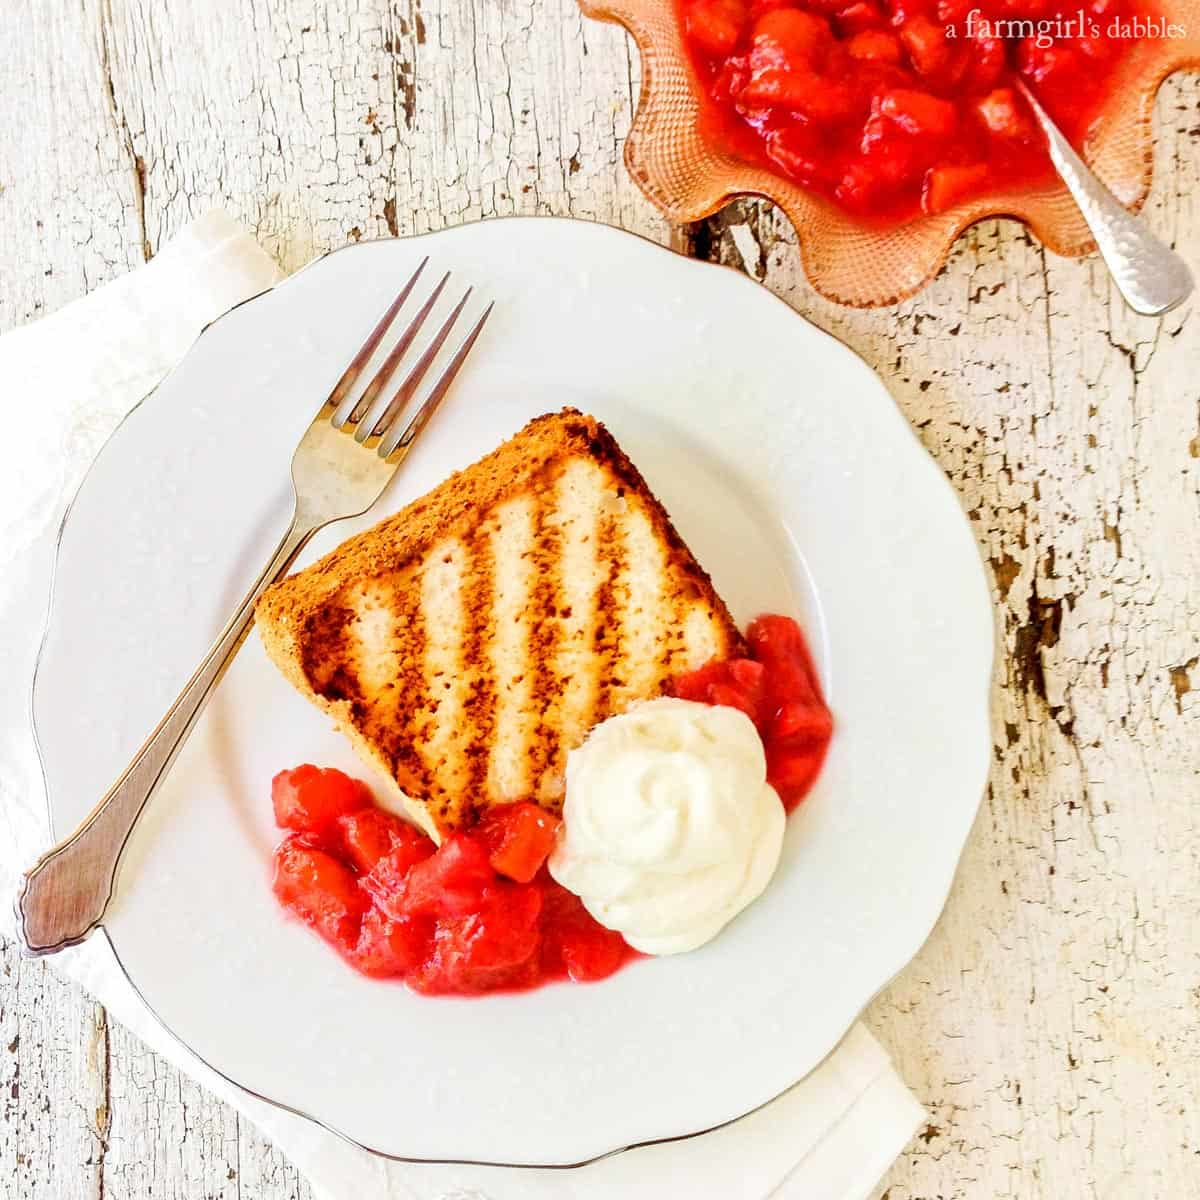 Grilled Angel Food Cake with Mom's Super Simple Rhubarb Sauce from afarmgirlsdabbles.com